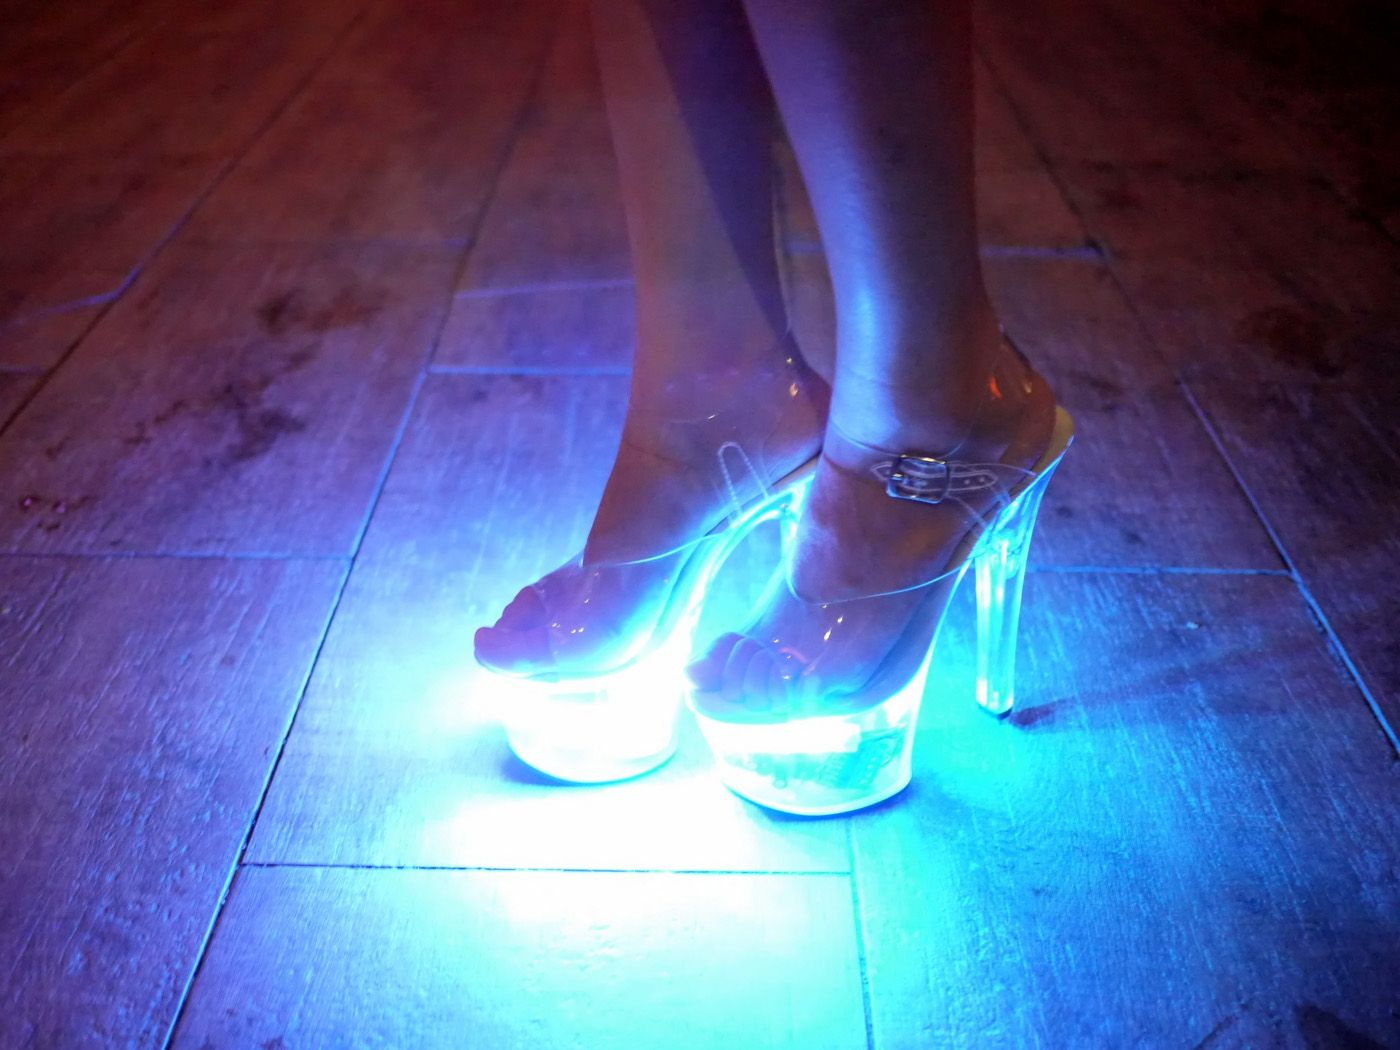 Clear Platform Heels With Leds Bluetooth Wearablewednesday Led Shoes Crazy Shoes Fashion Shoes